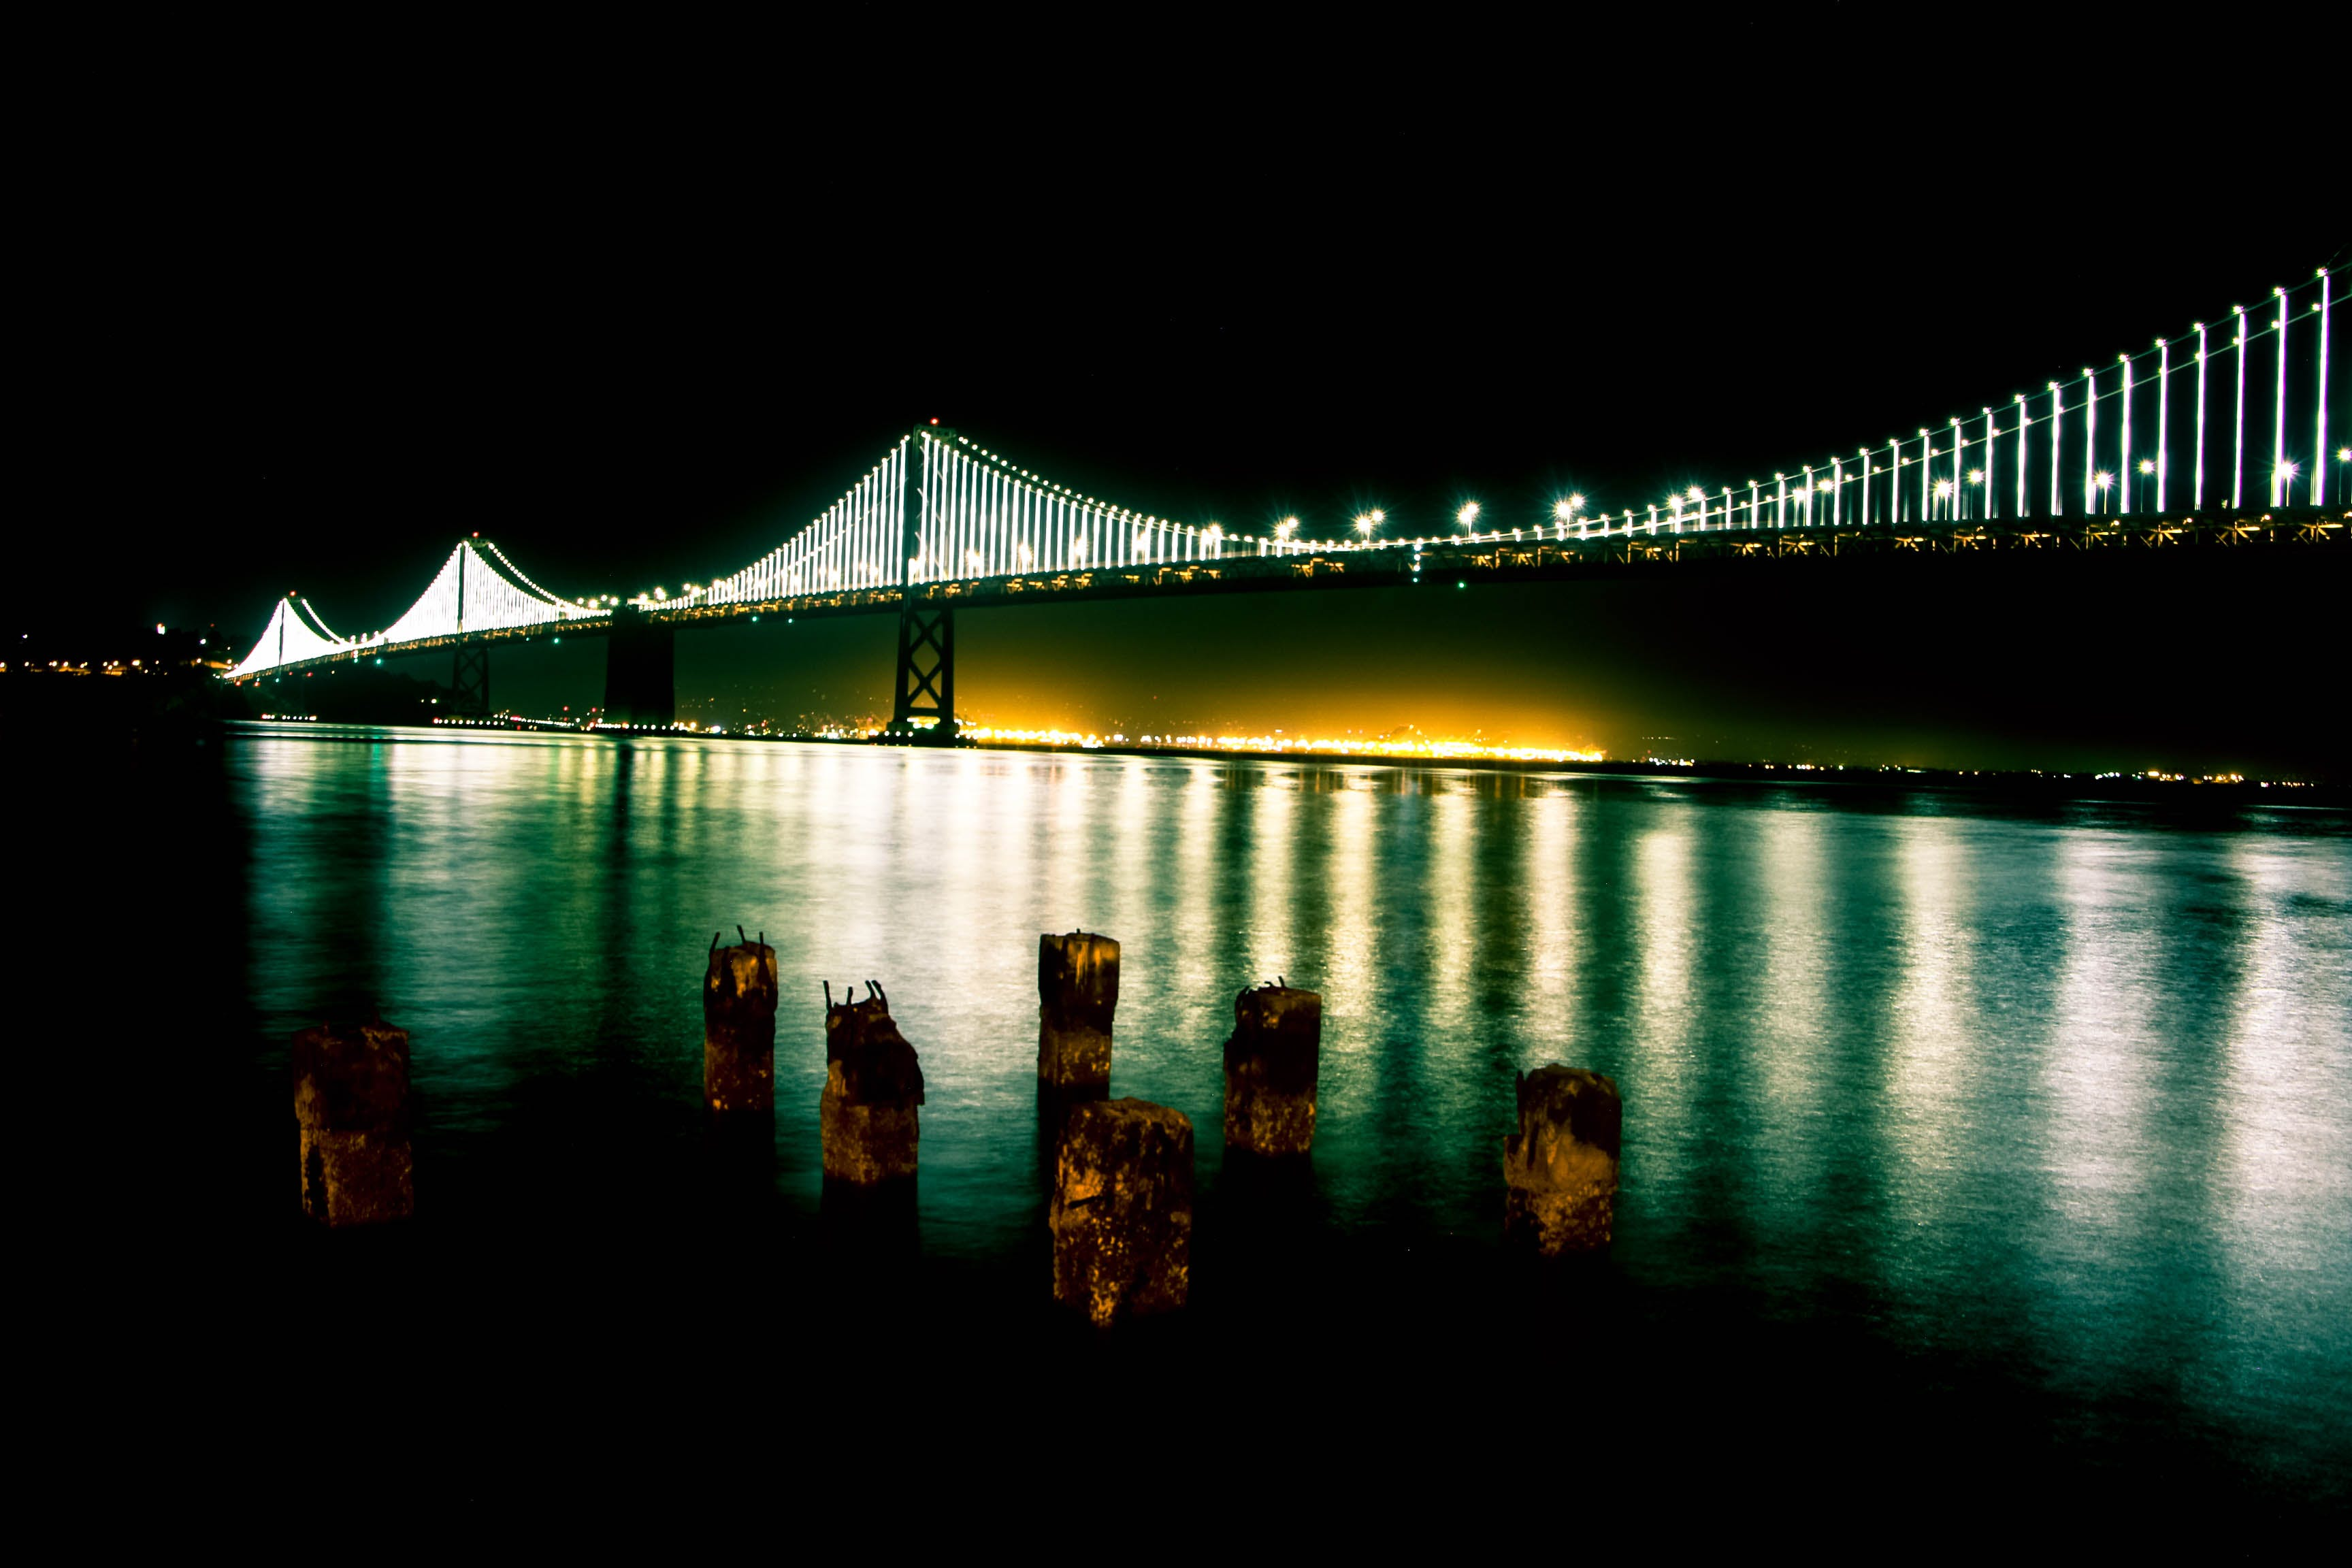 Black Bridge With Lights during Nighttime